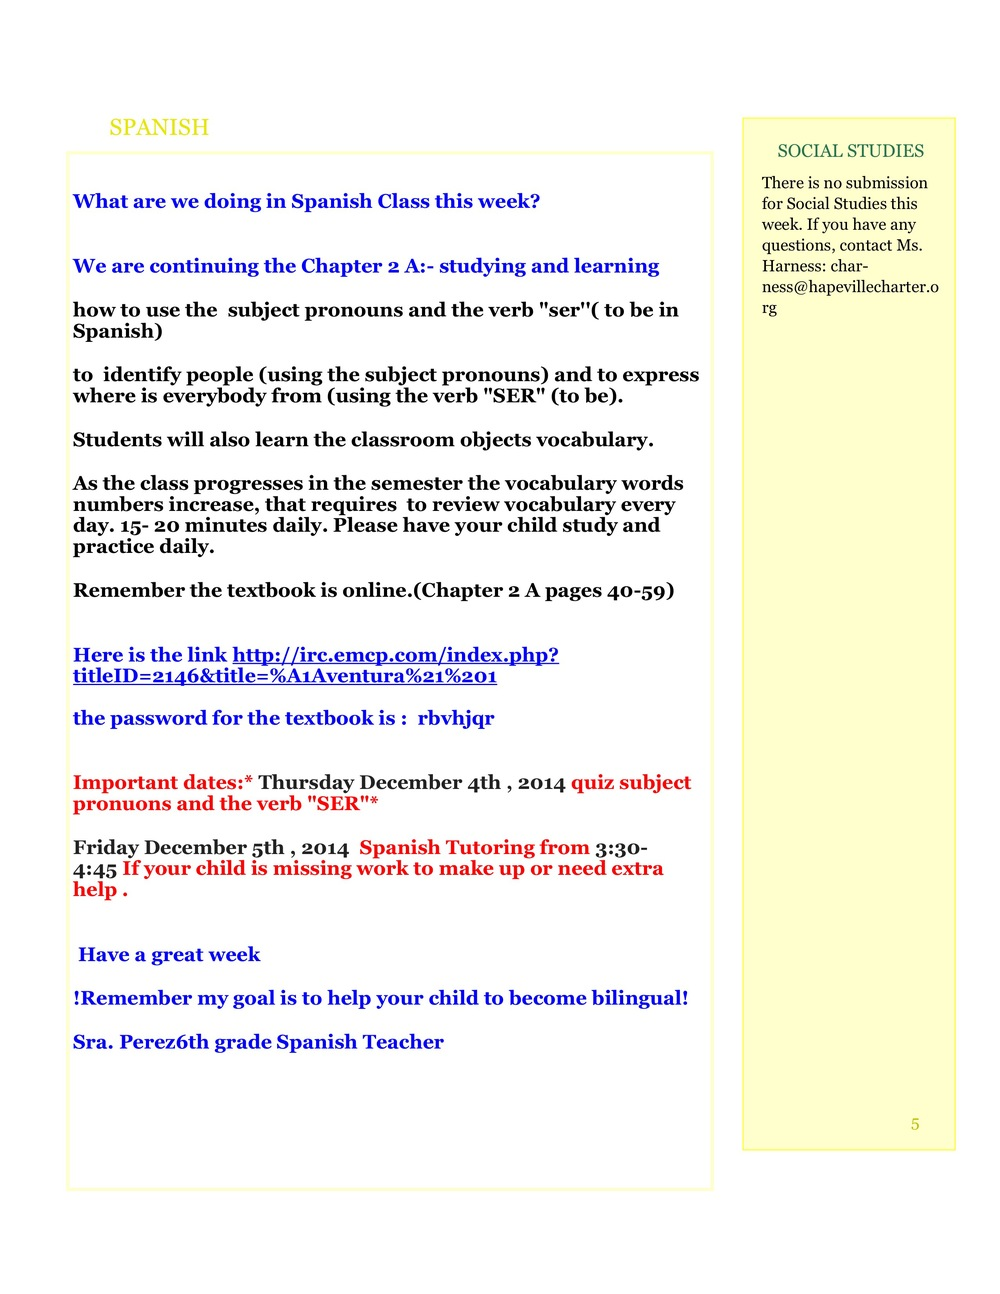 Newsletter Image6th Grade December 1-5 5.jpeg